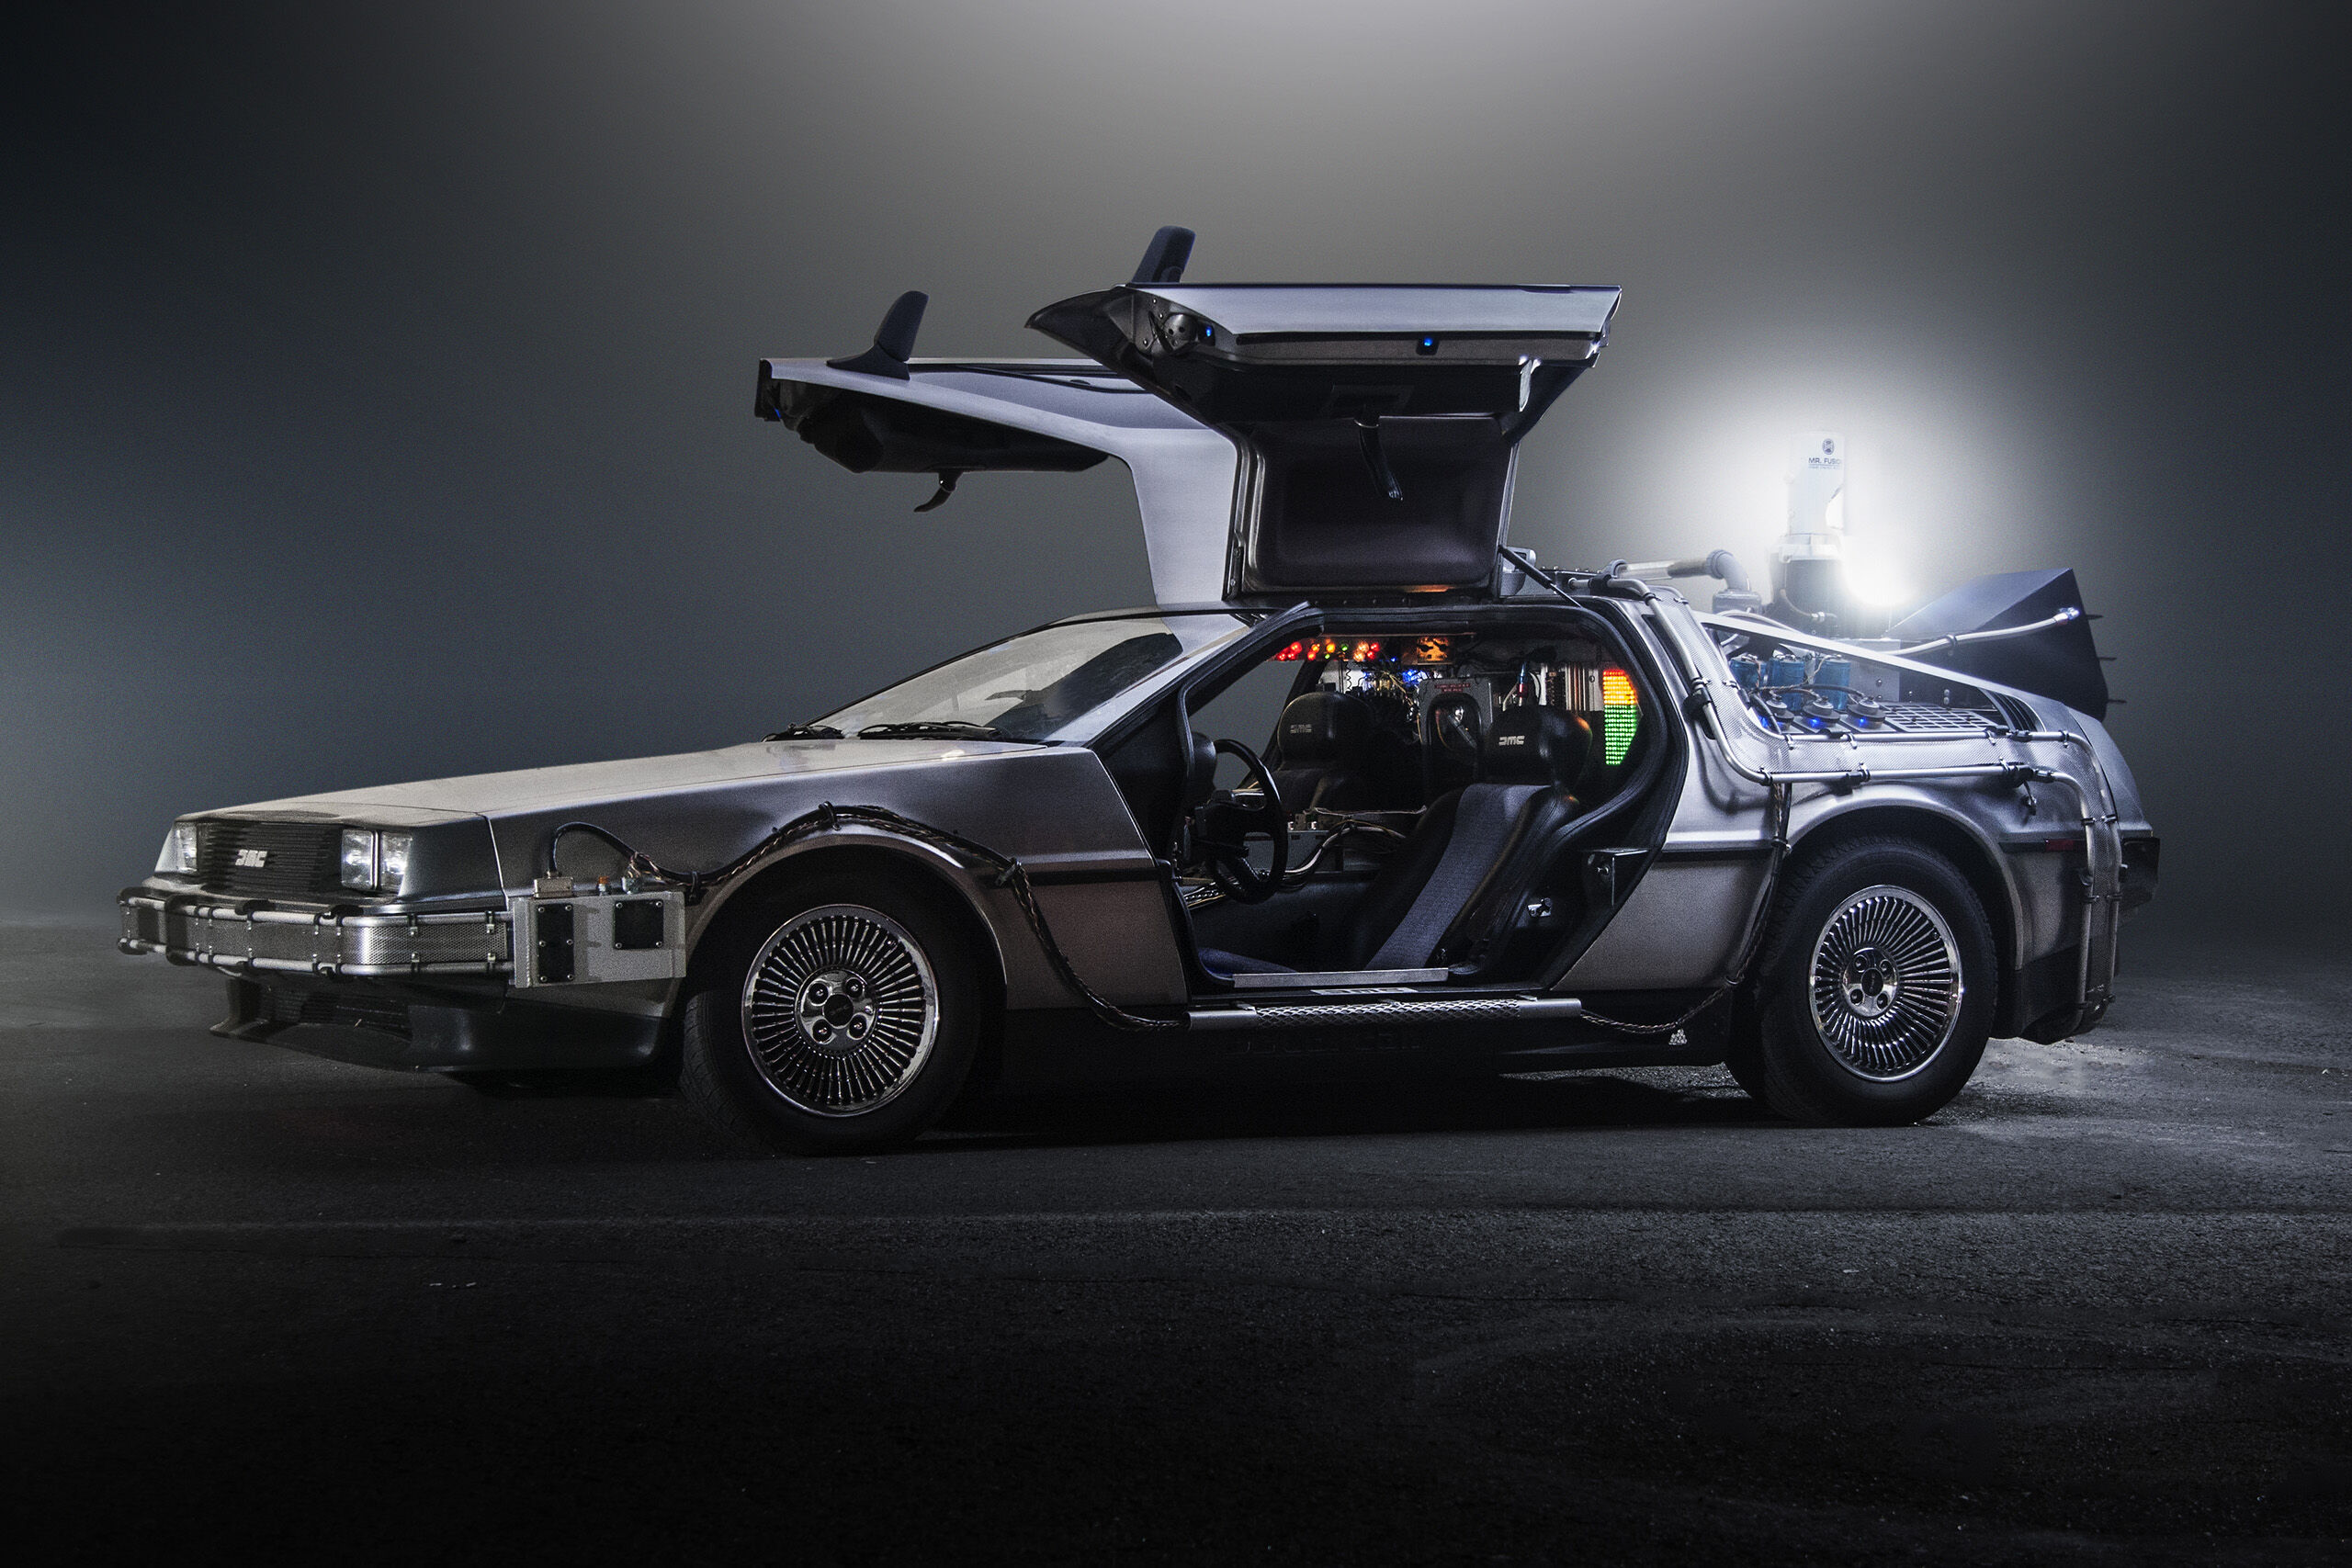 Delorean Image